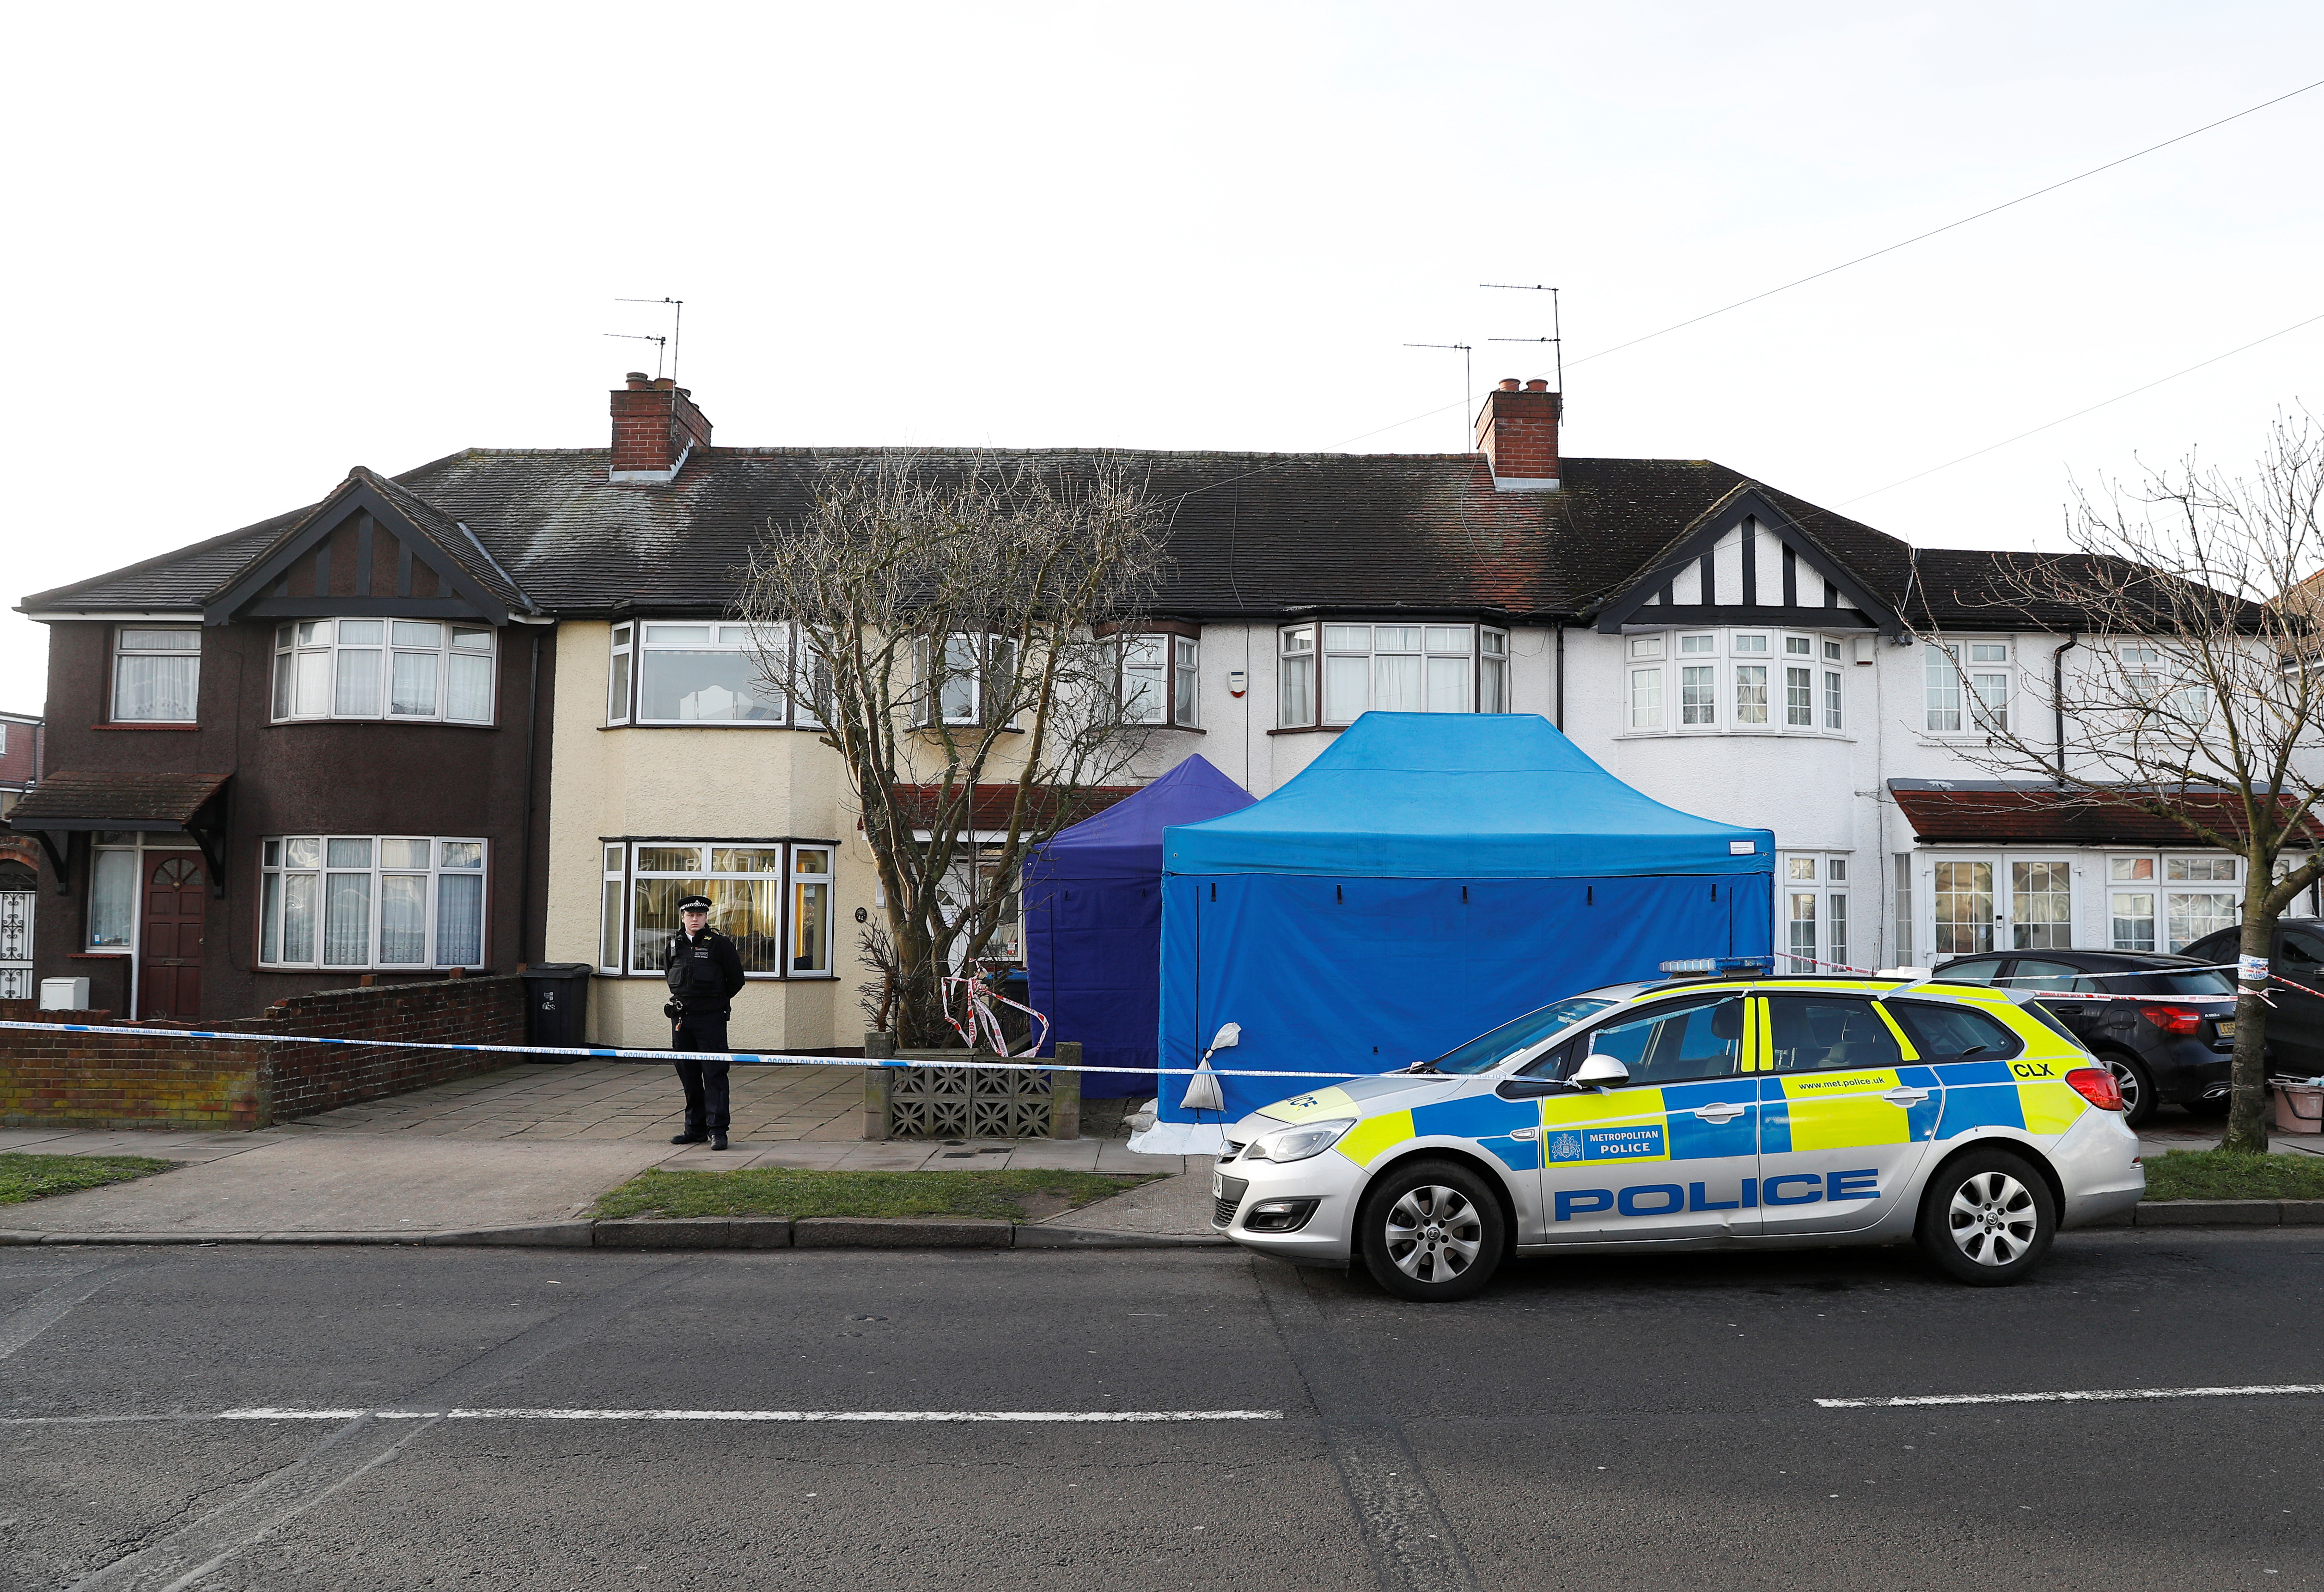 Police stand on duty outside the home of Nikolai Glushkov in New Malden, on the outskirts of London Britain, March 14, 2018. REUTERS/Peter Nicholls